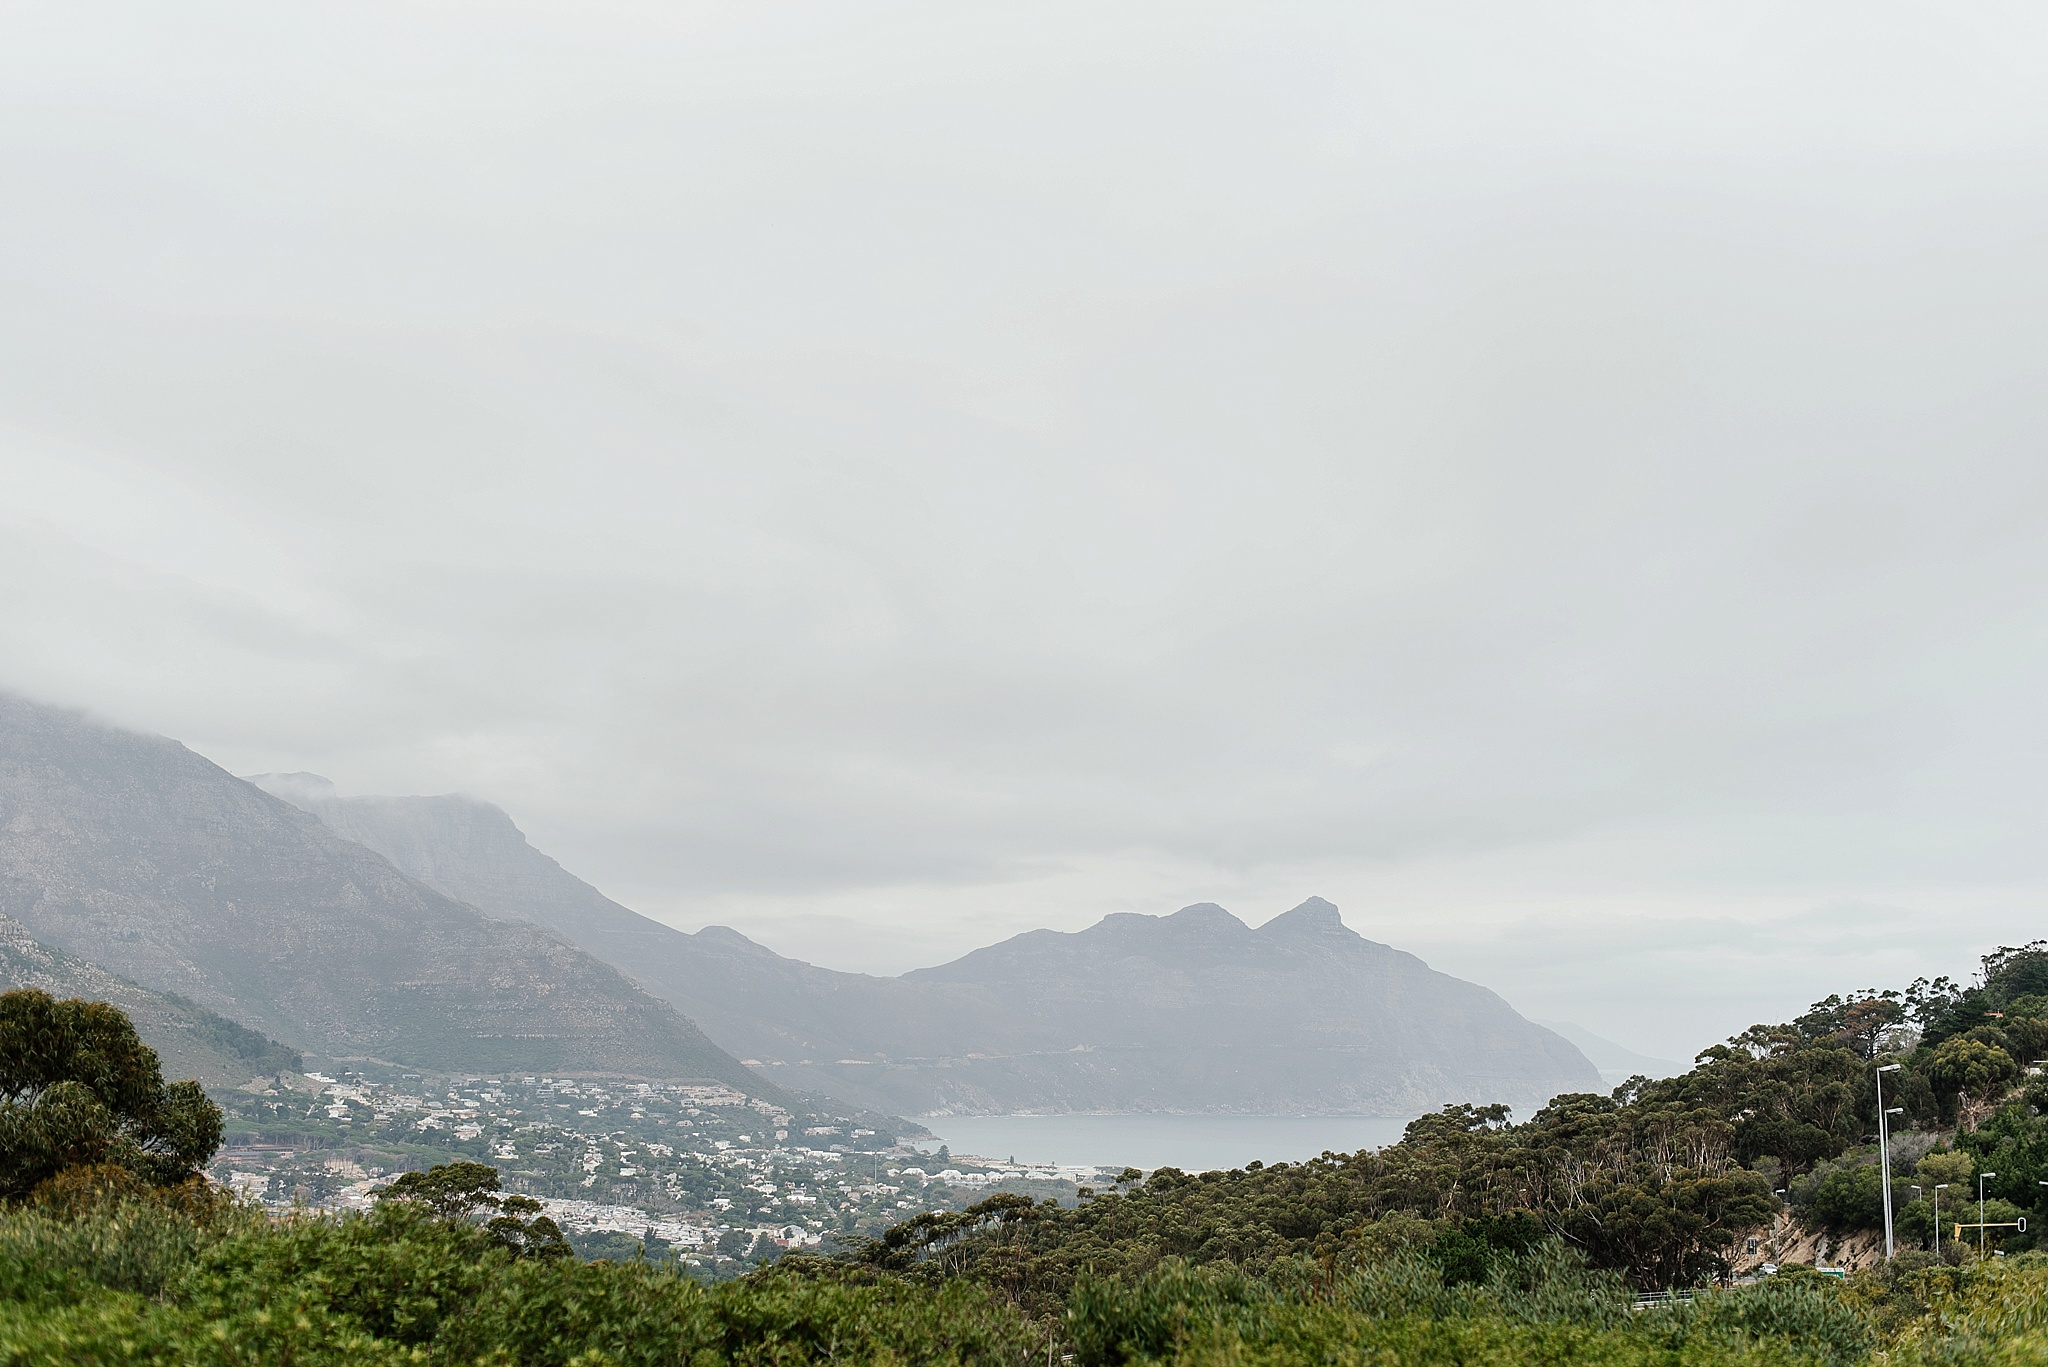 Cape Town Wedding Photographer Darren Bester - SuikerBossie - Stephen and Mikaela_0047.jpg